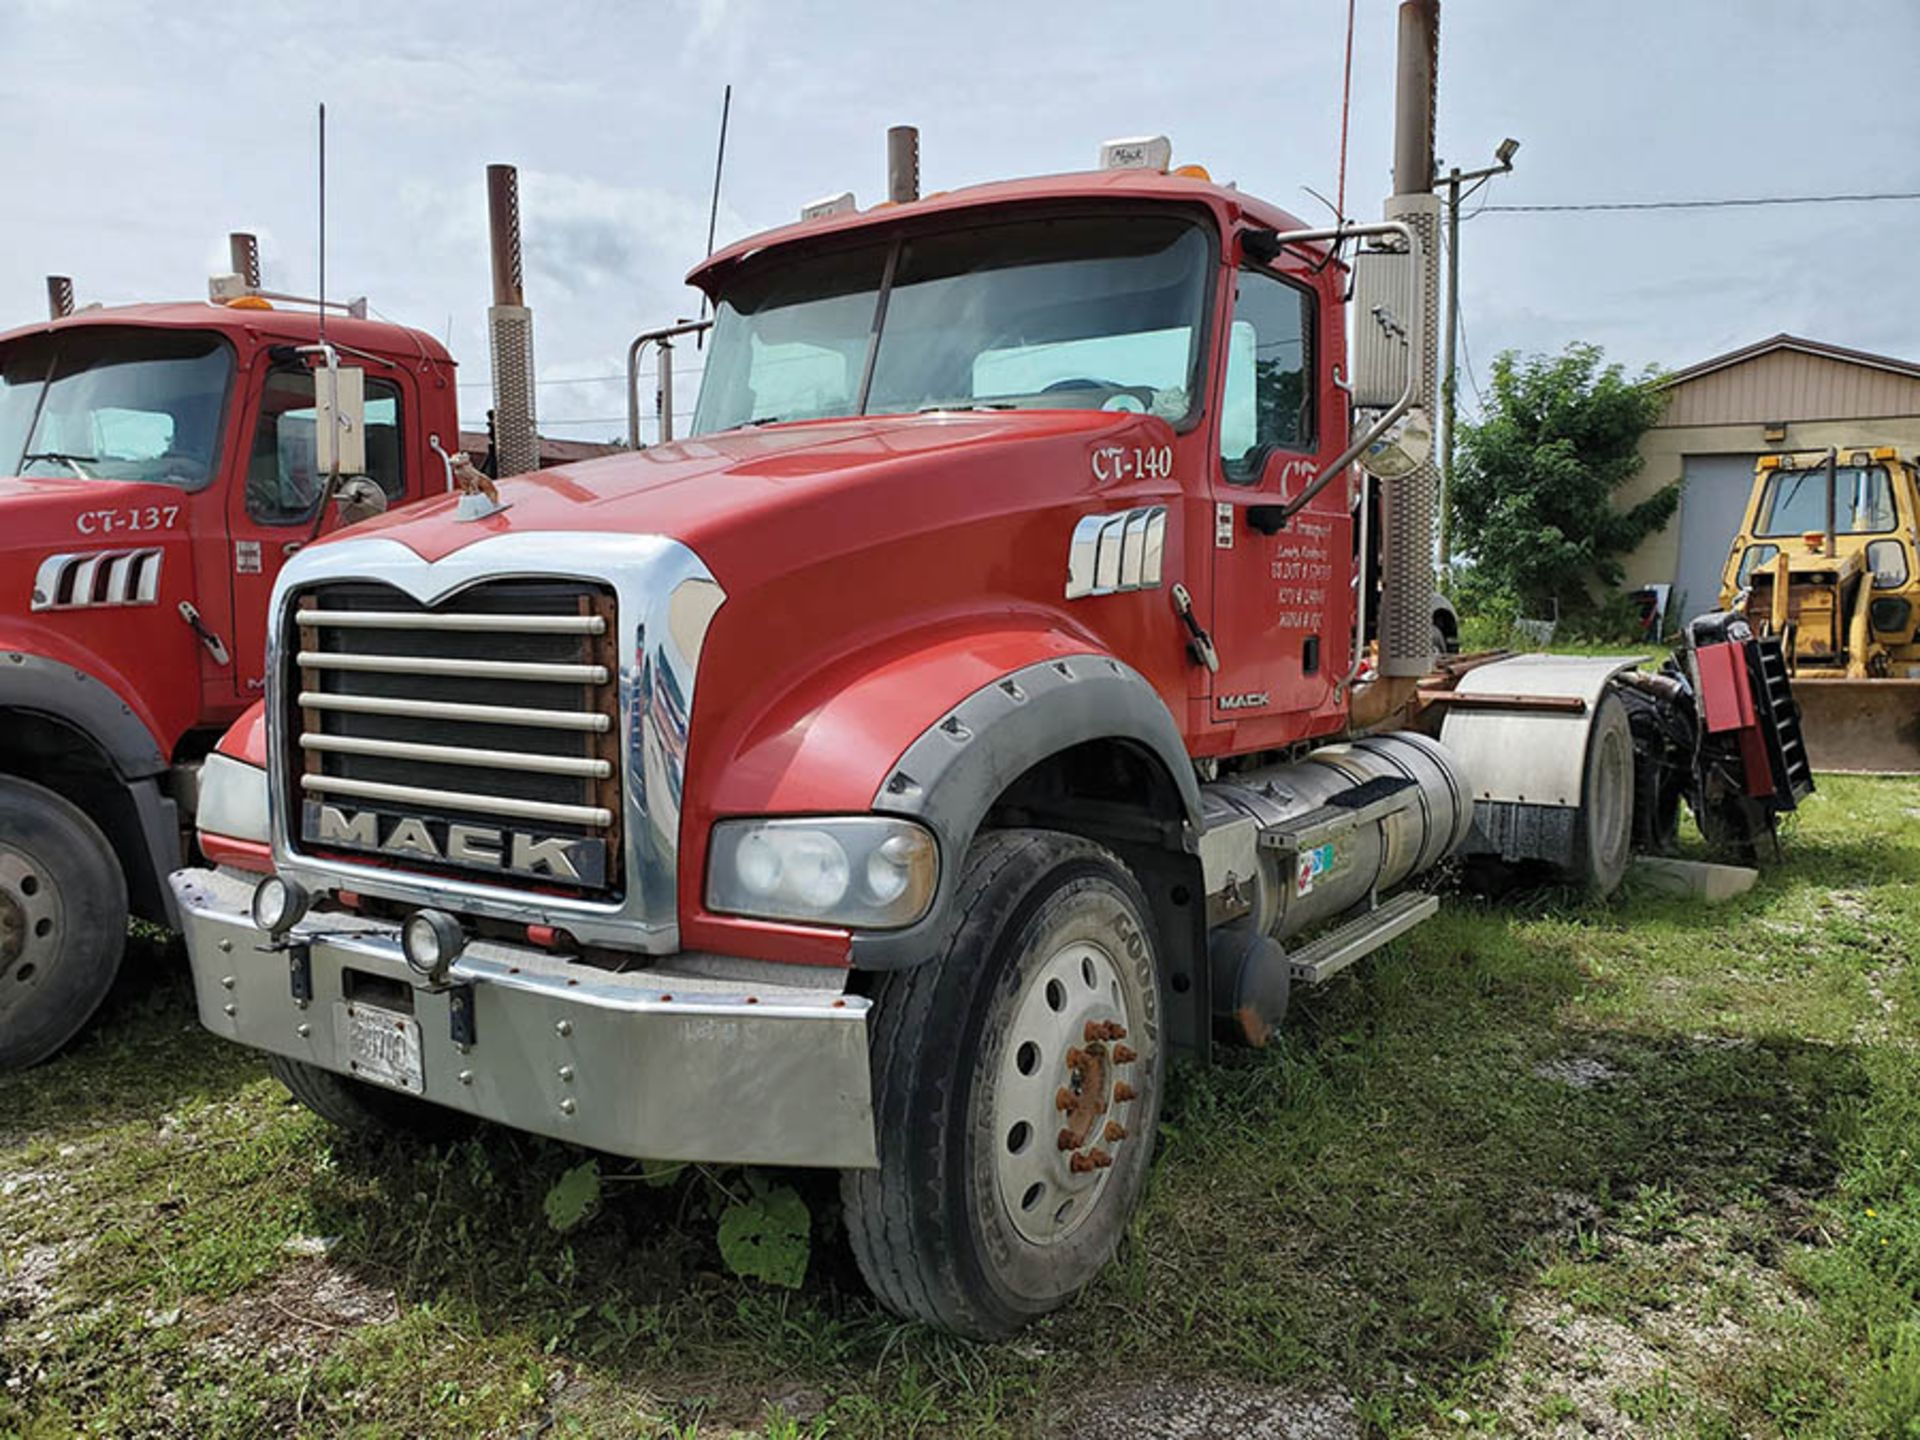 Lot 5 - 2009 MACK GU713 T/A DAY CAB TRACTOR, MAXITORQUE 18 SPEED TRANS., WET LINES MACK INLINE SIX DIESEL